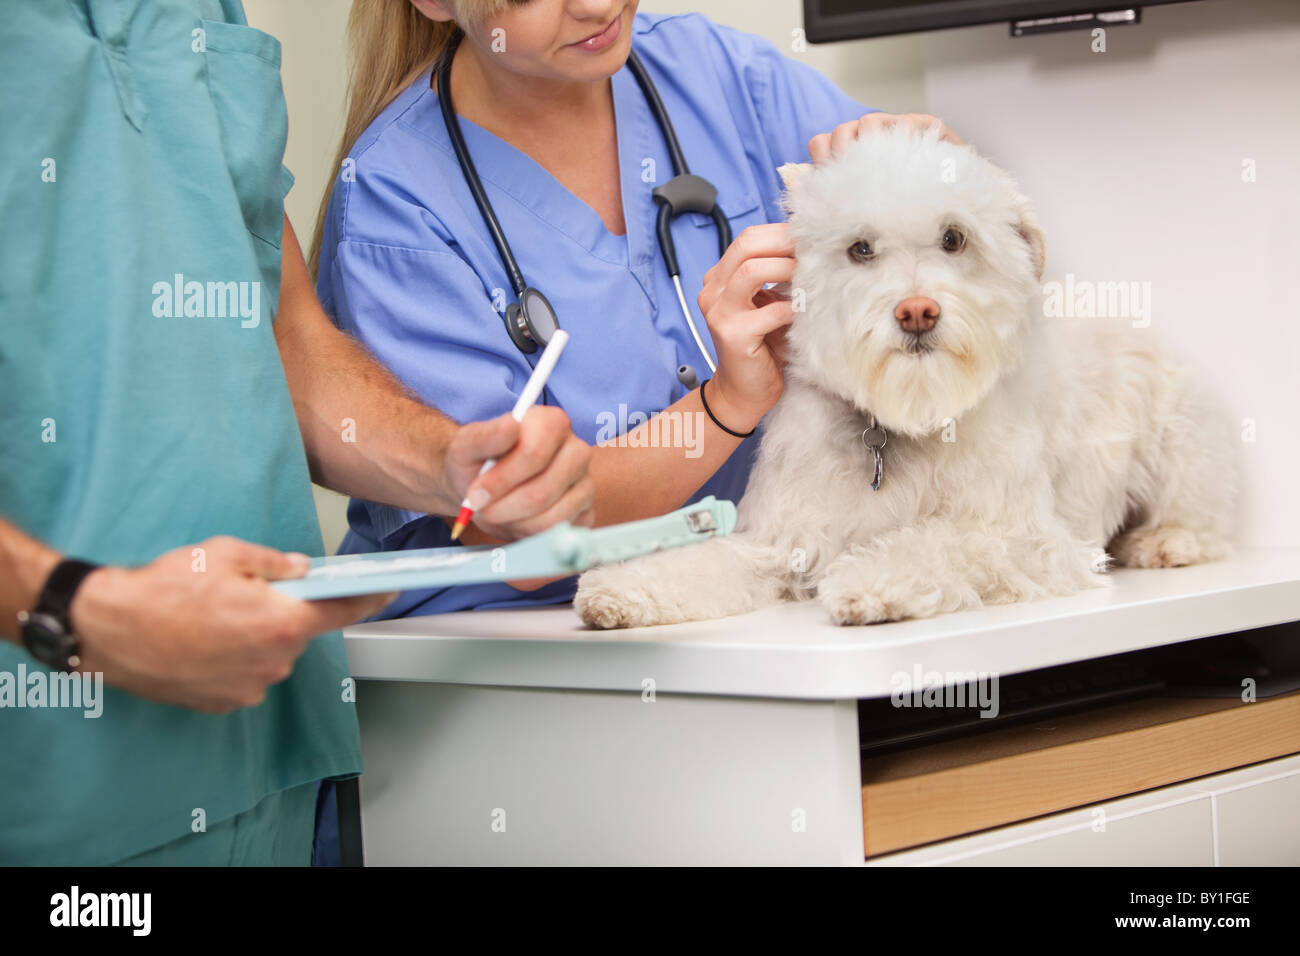 Mid section of veterinarian and assistant examining dog - Stock Image